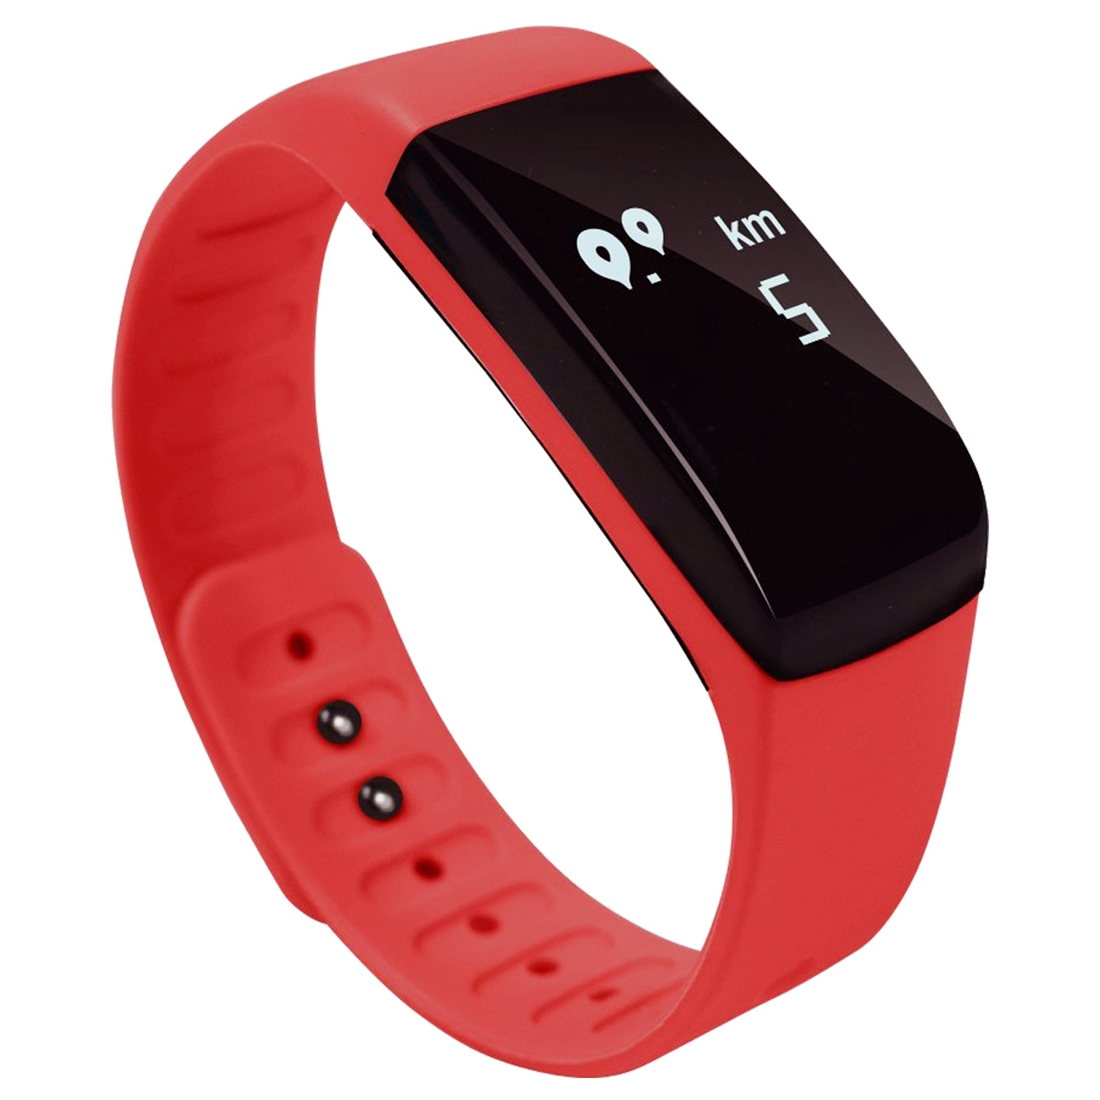 Smart Bracelet Heart Rate Monitor Smart Band Fitness Tracker Smart Wristband Call SMS Reminder for IPhone6/PLUS Smartphones